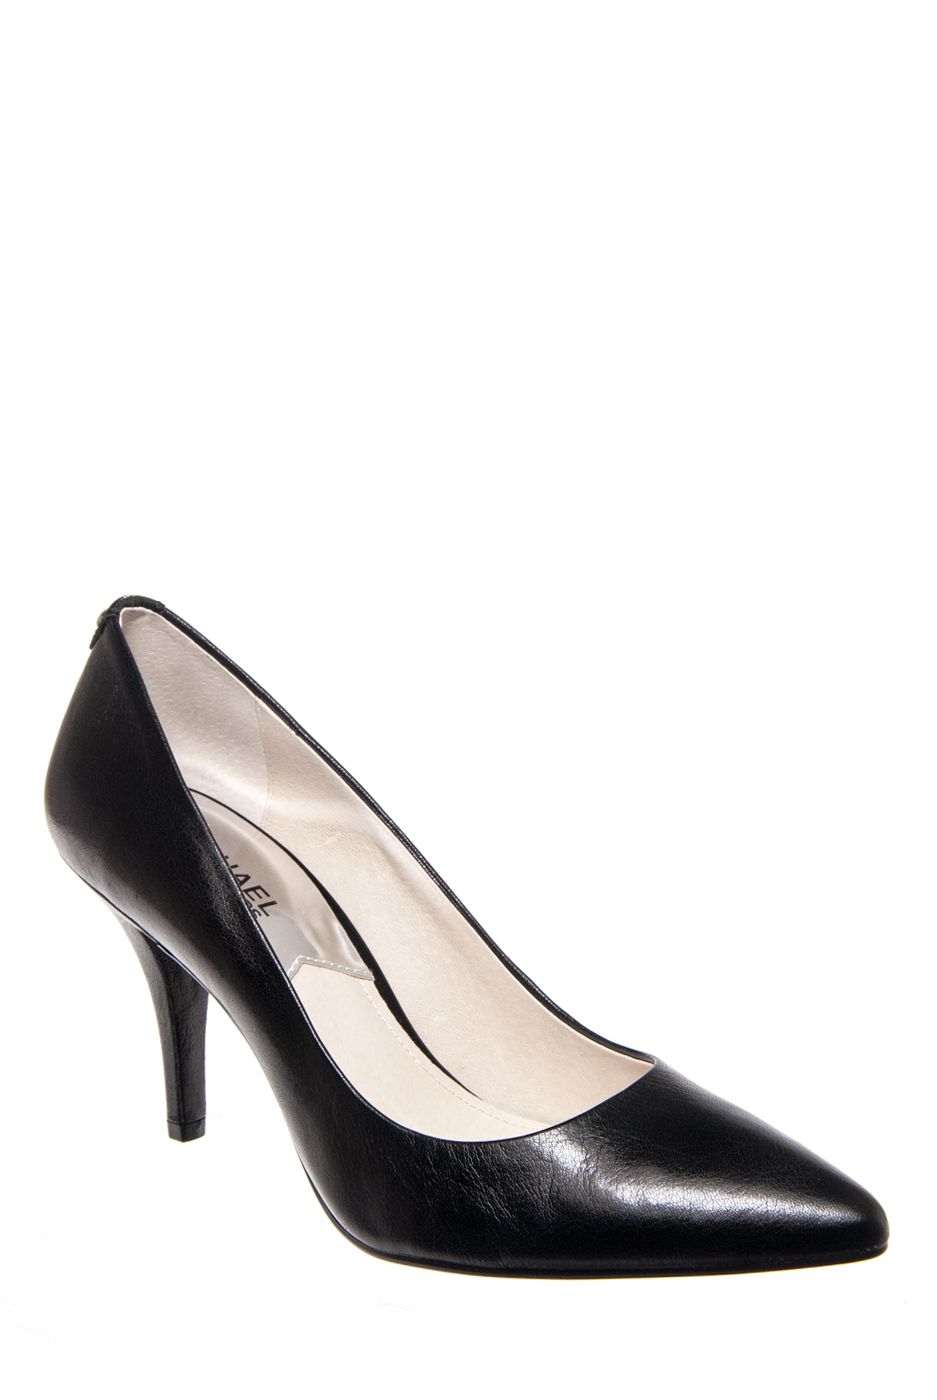 MICHAEL by Michael Kors Flex Mid Heel Pumps - Black